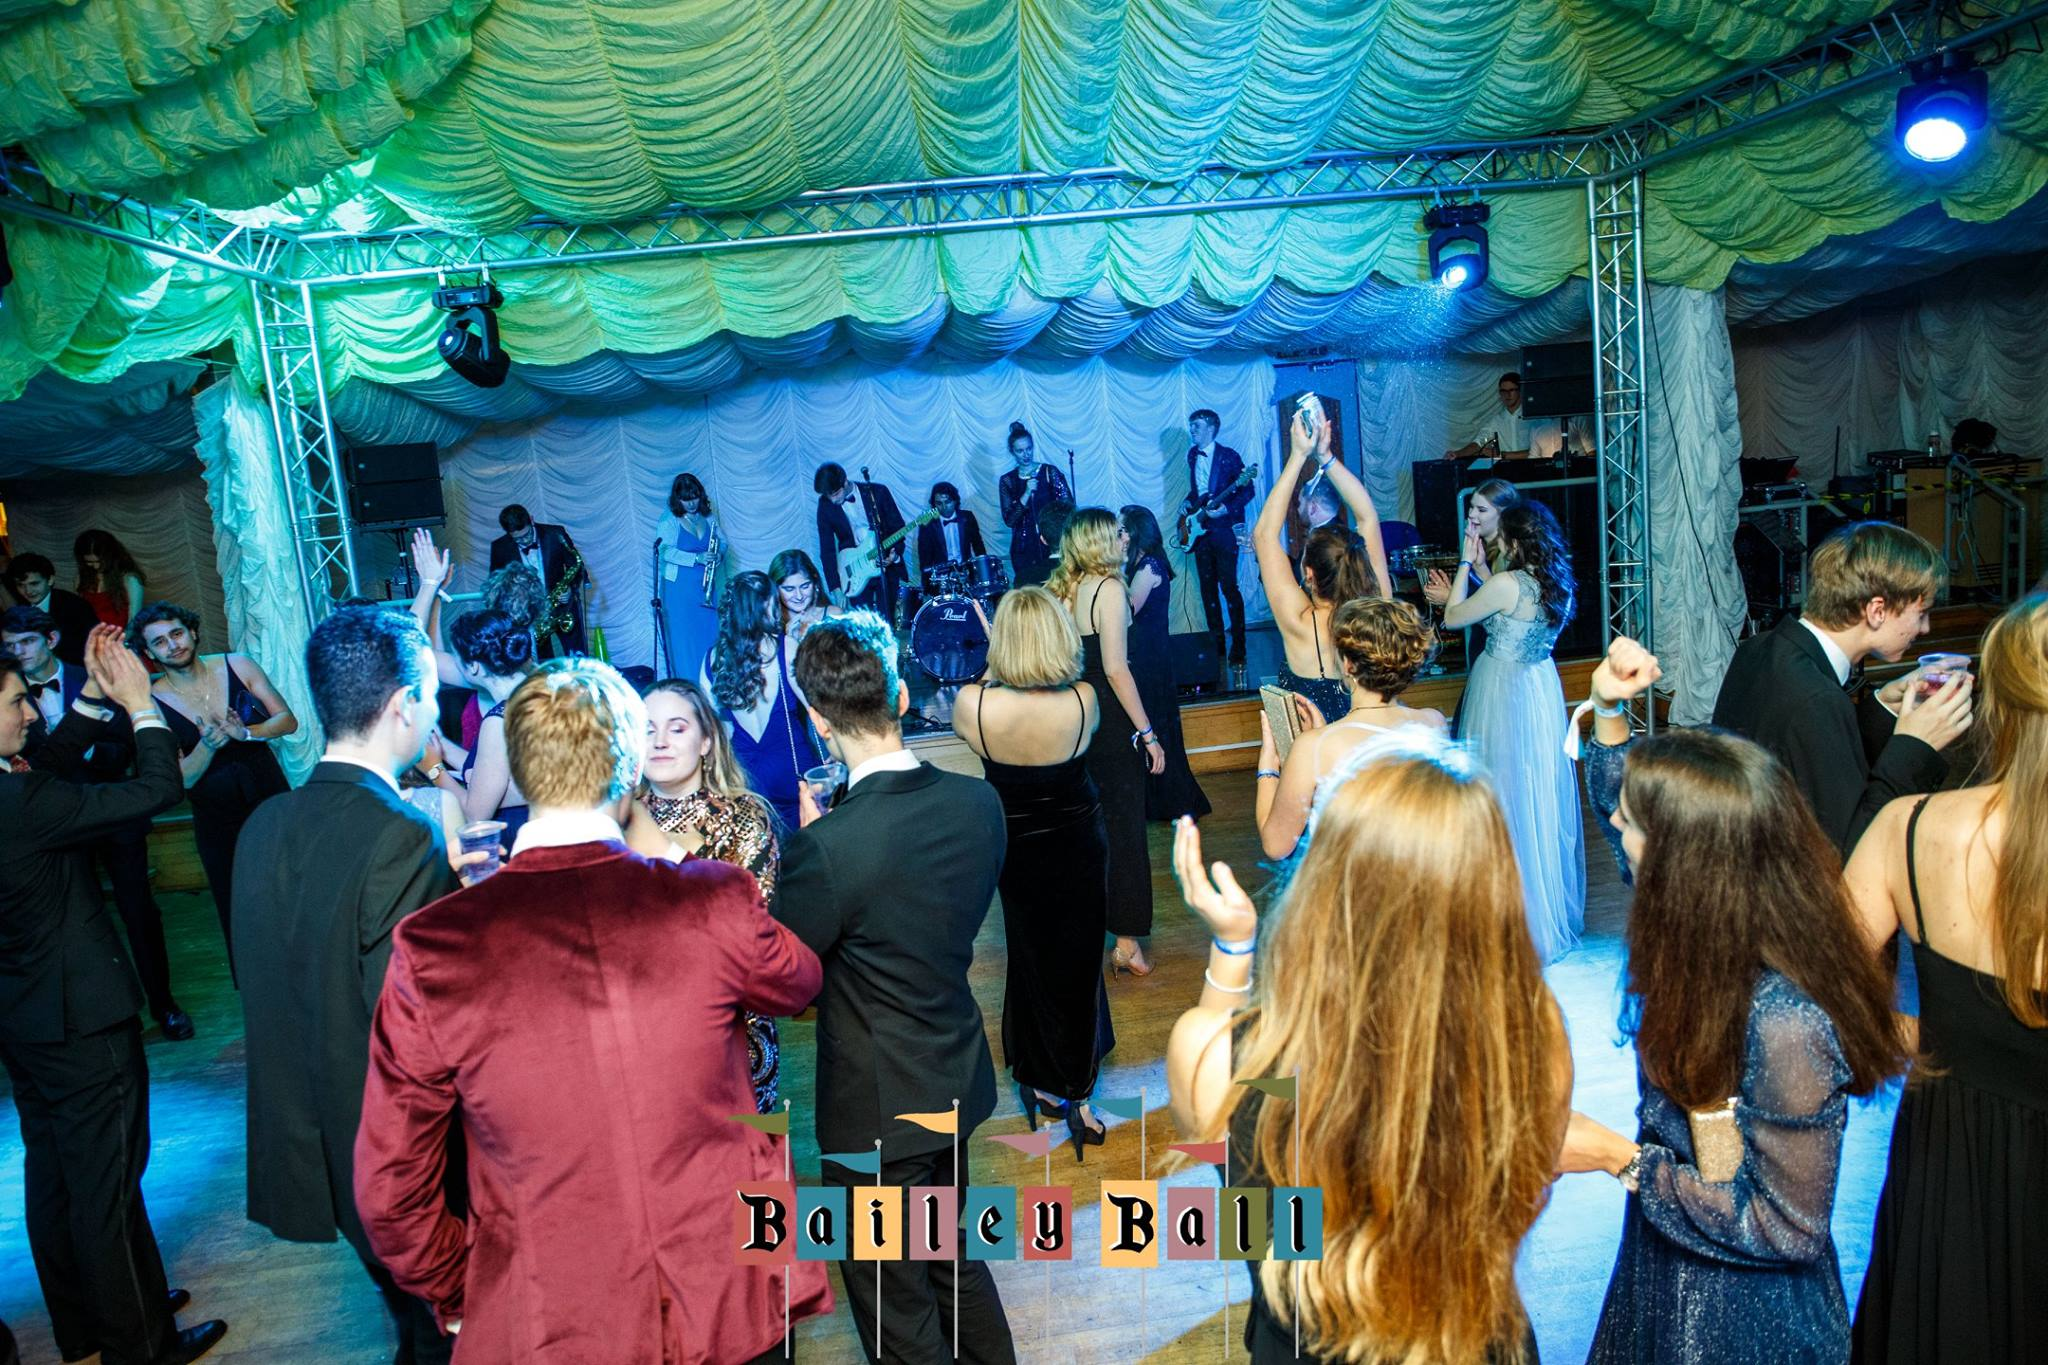 A photo of Bailey Ball 2018, showing live music and people dancing.